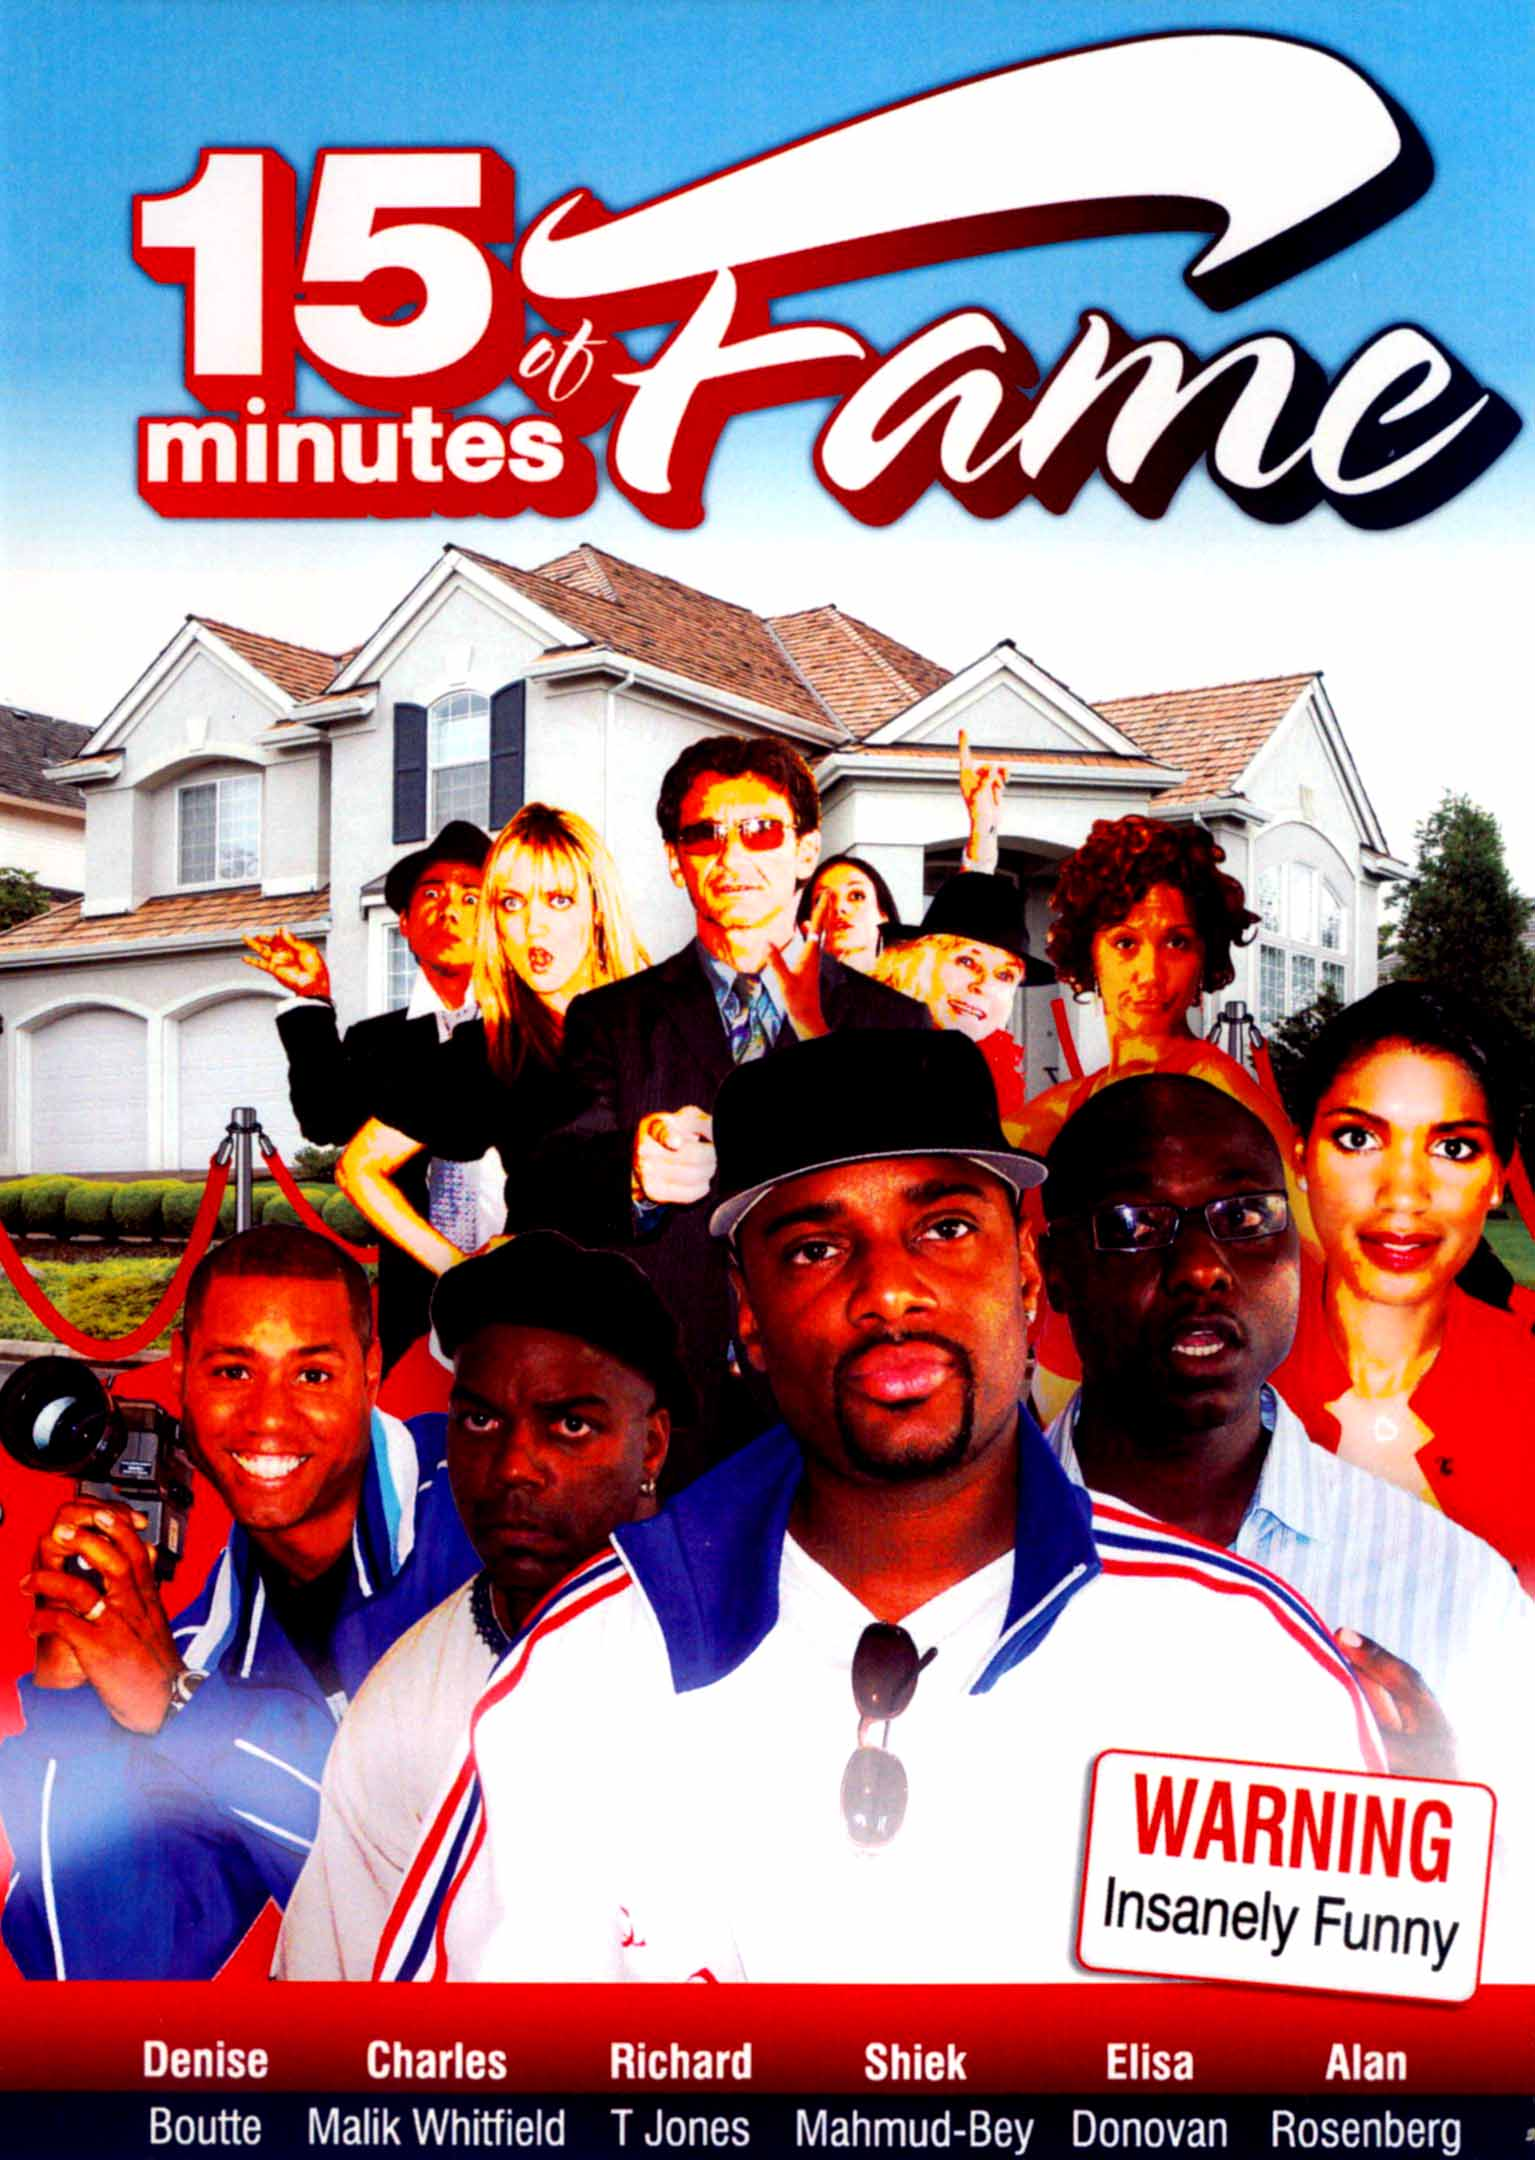 15 minutes of fame Lyrics to 15 minutes of fame song by bj the chicago kid: i remember back in the beginning i was scared to give you my love i didn't wanna let go of all these.